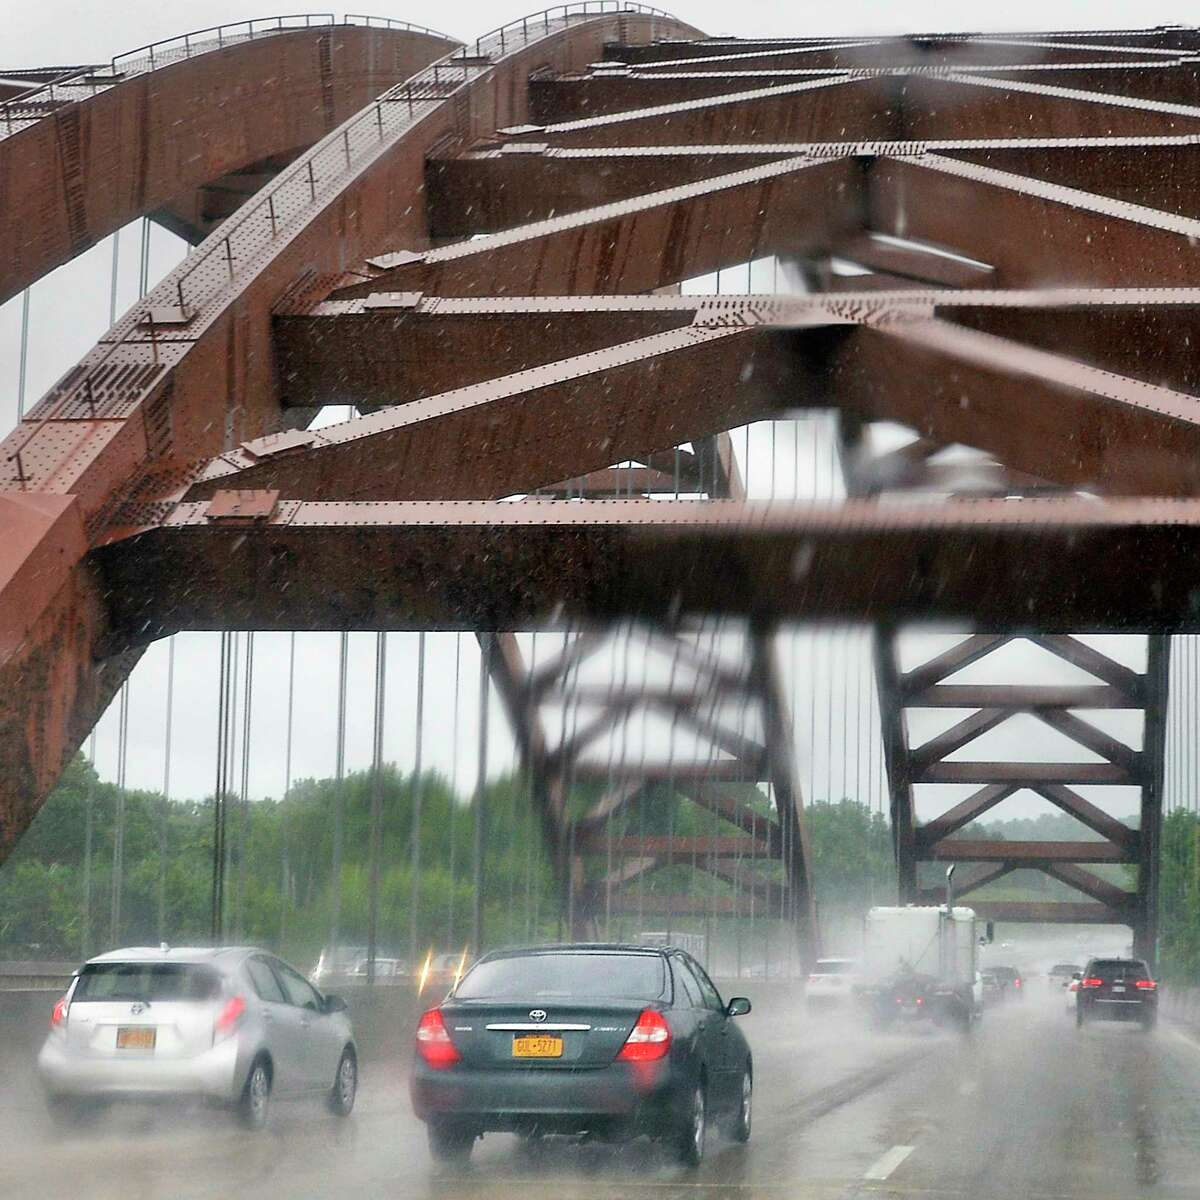 A rainy drive south across the Thaddeus Kosciusko Bridge, commonly referred to as the Twin Bridges, or just